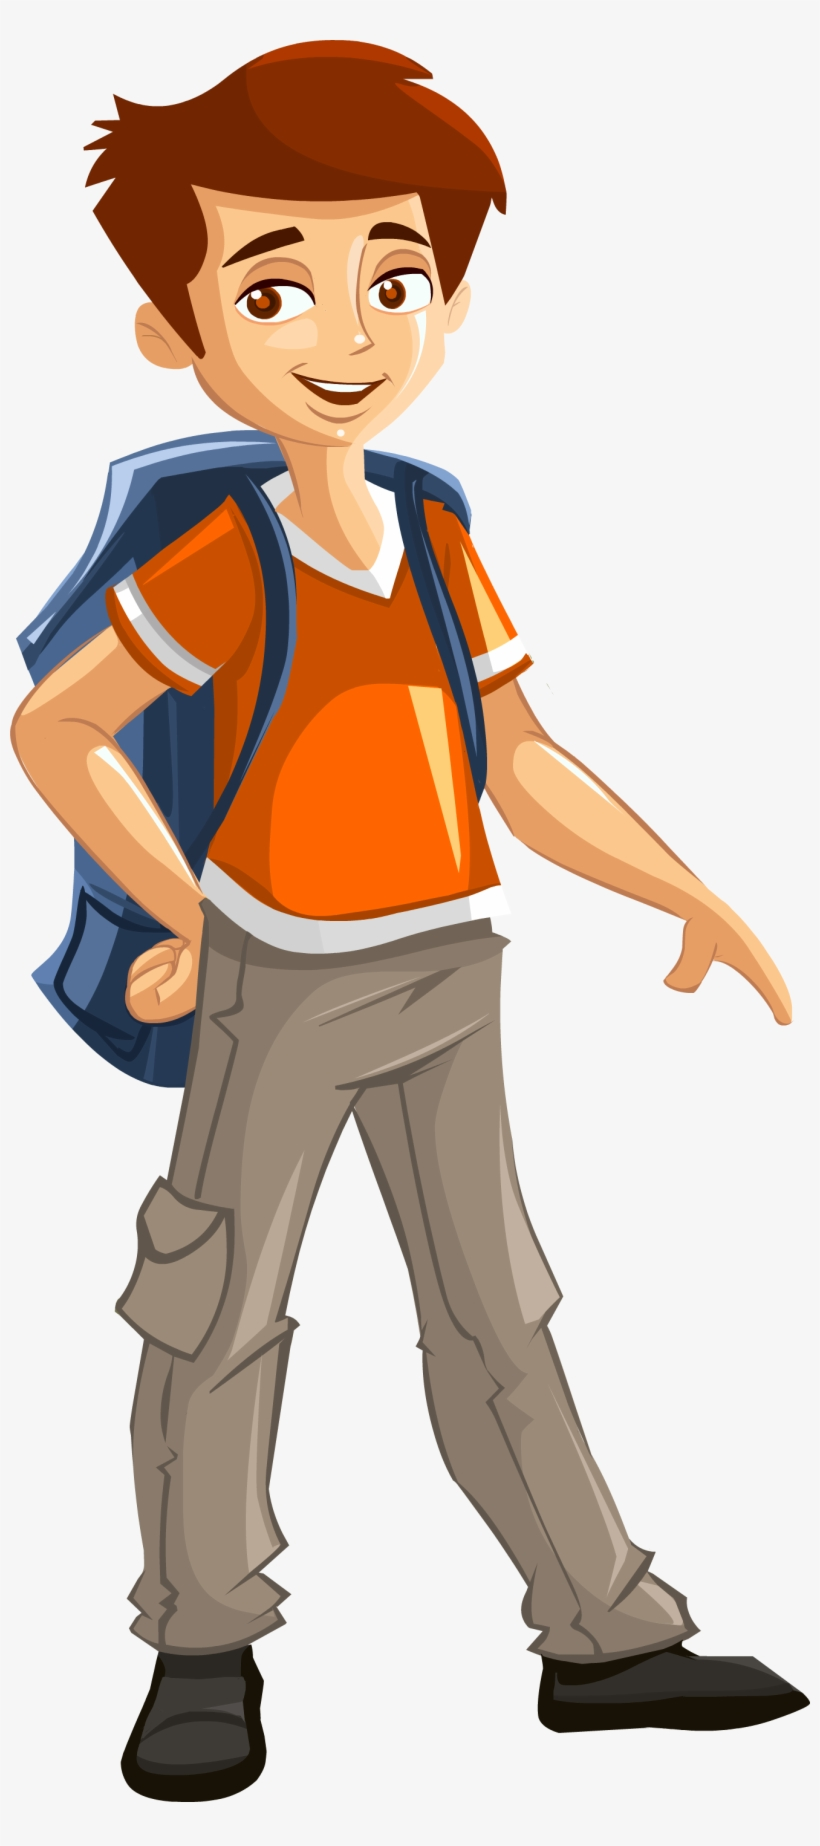 Png Transparent Download Graphic Design Cartoon Boys Boy Cartoon Characters Designs Transparent Png 1323x2914 Free Download On Nicepng,Design Thinking Process And Methods